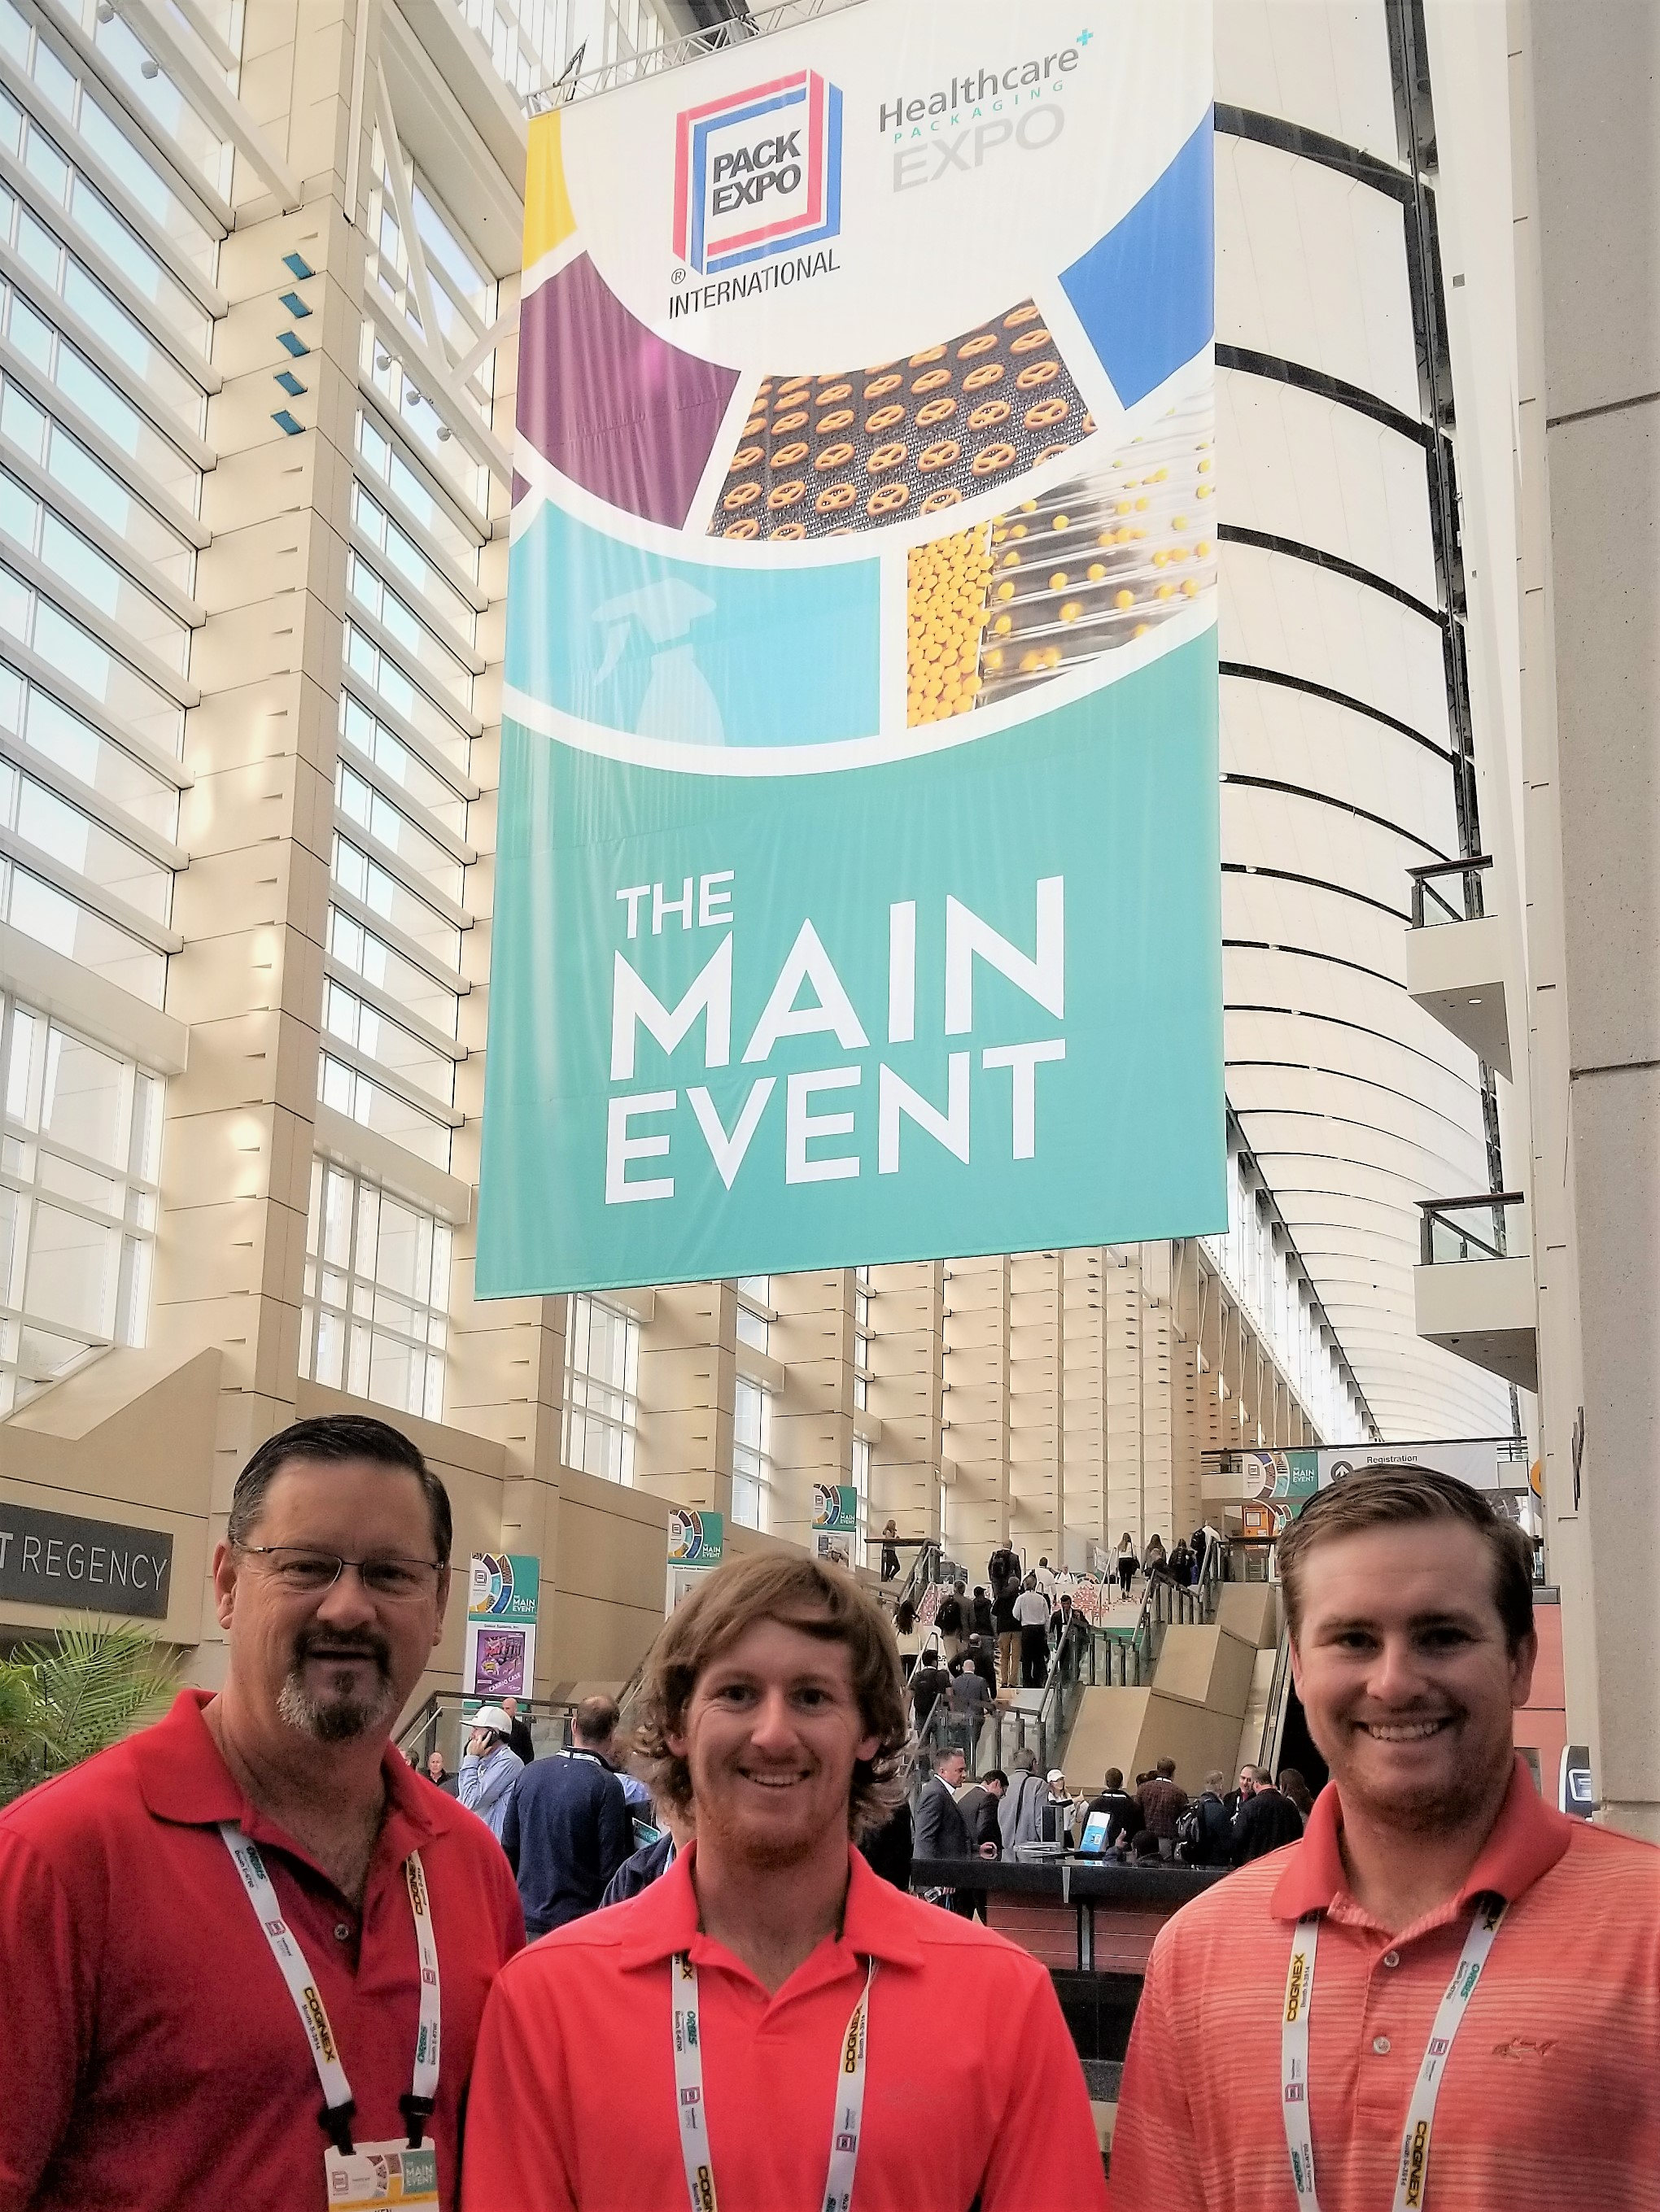 Ken, Josh, and John Ballard at Pack Expo 2018.